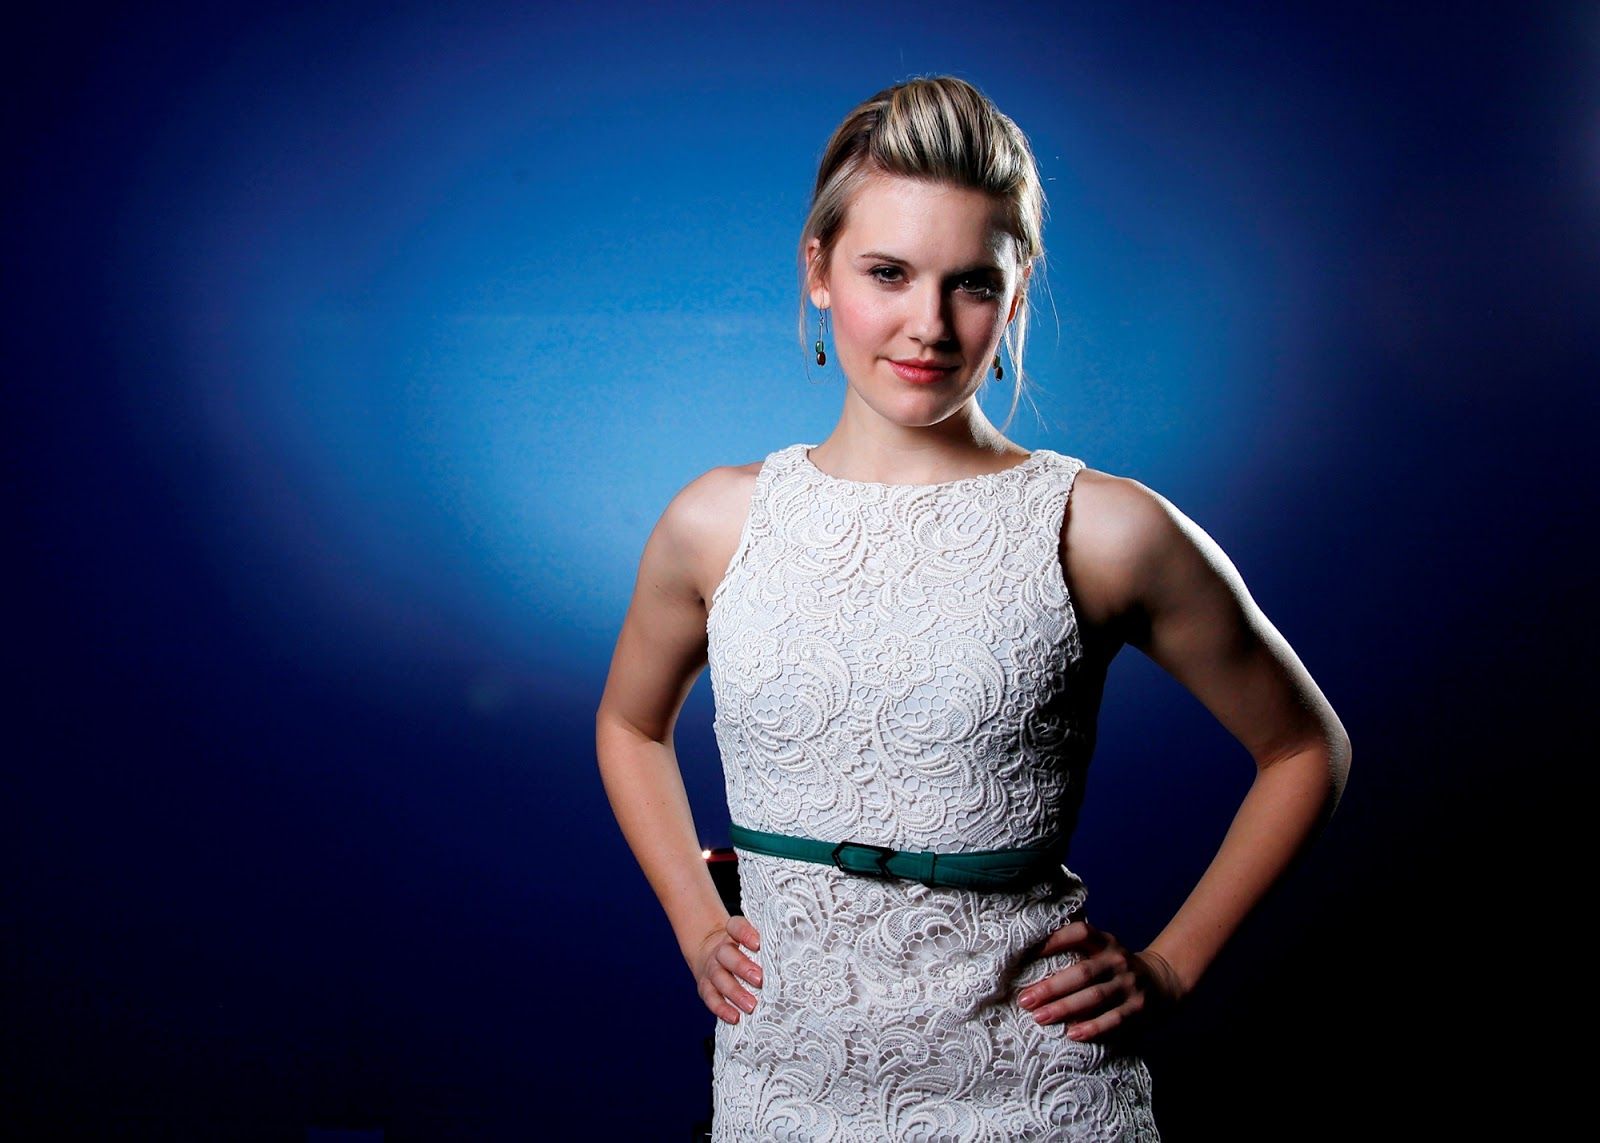 1600x1143 - Maggie Grace Wallpapers 8